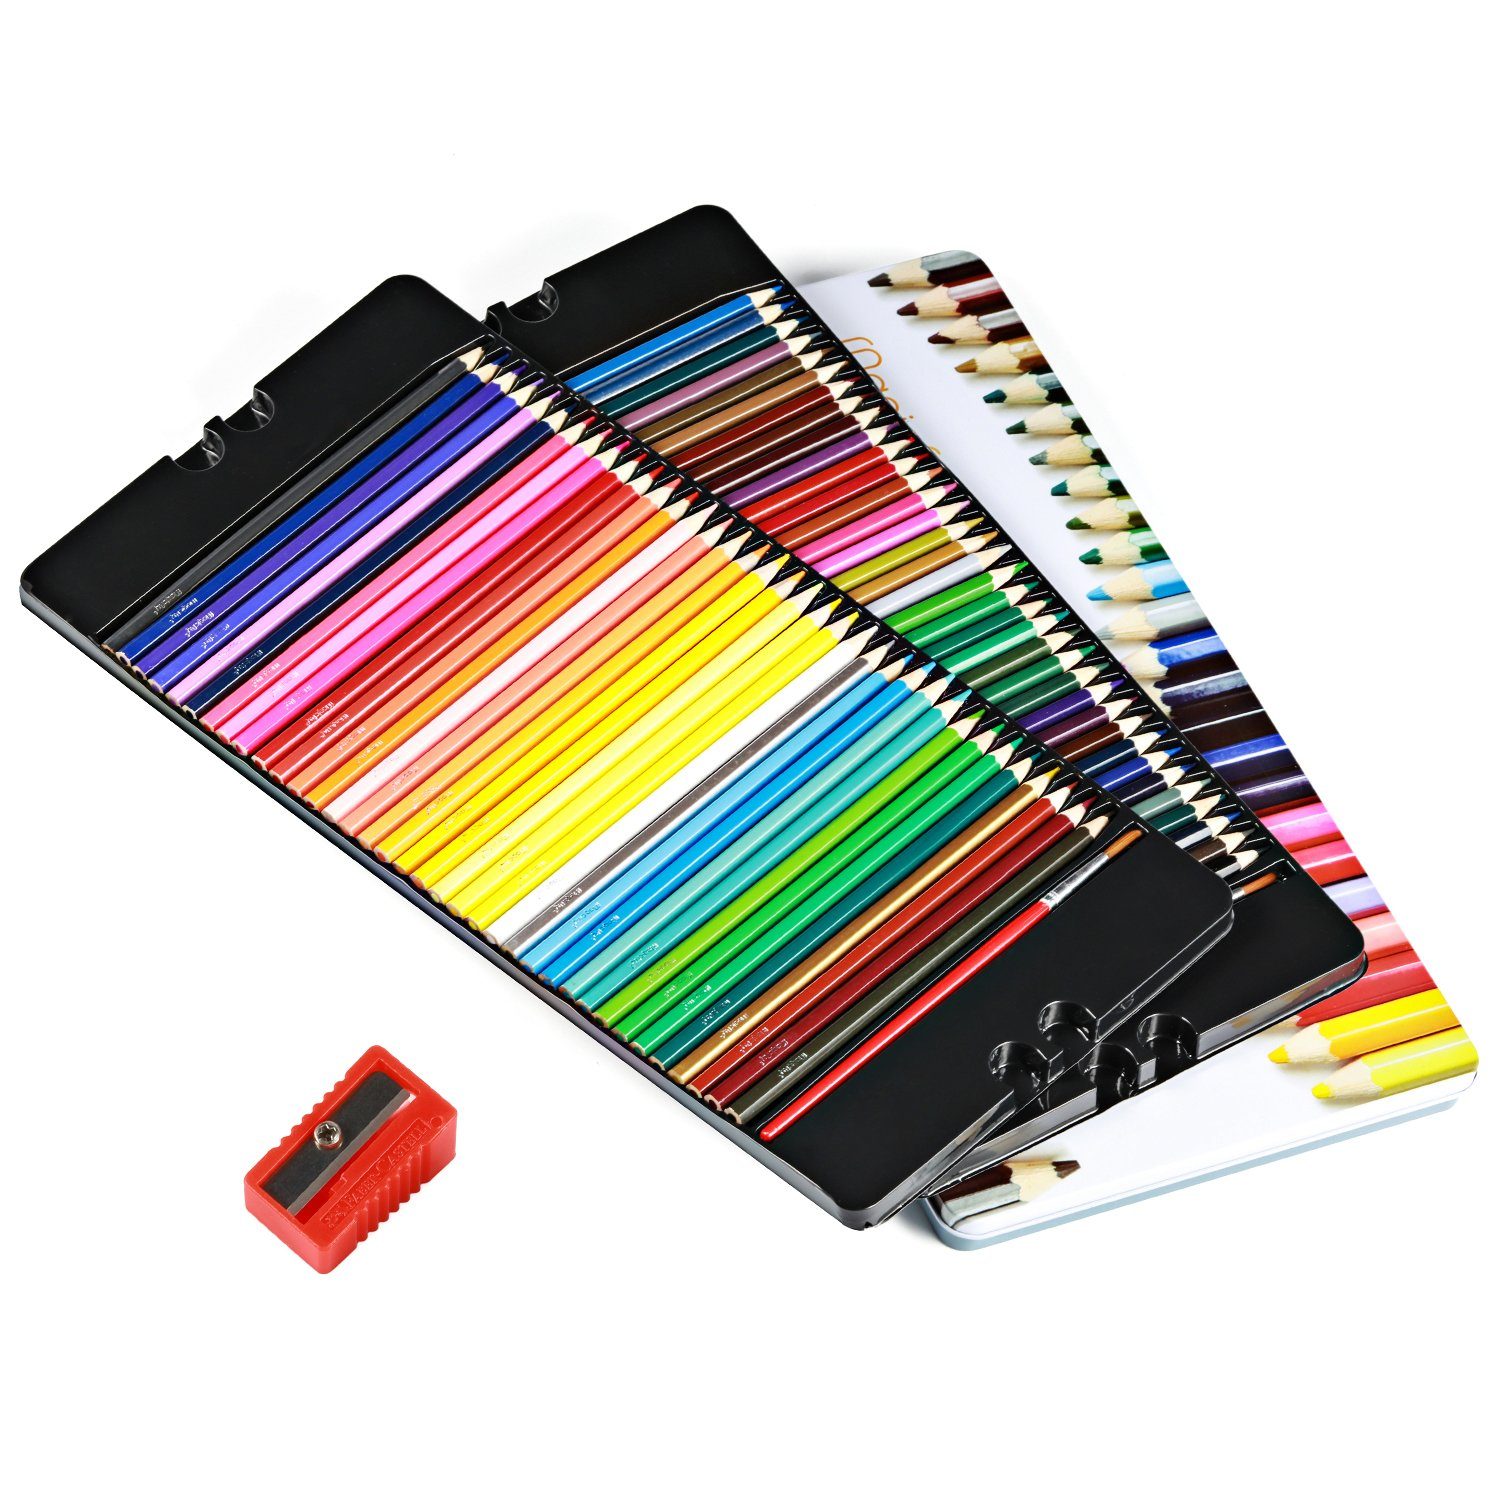 Magicfly Watercolor Pencils, 72 Colored Pencils Set Premier Soft Core with 2 Brushes, Metal Tin Case, and Bonus Pencil Sharper by Magicfly (Image #6)